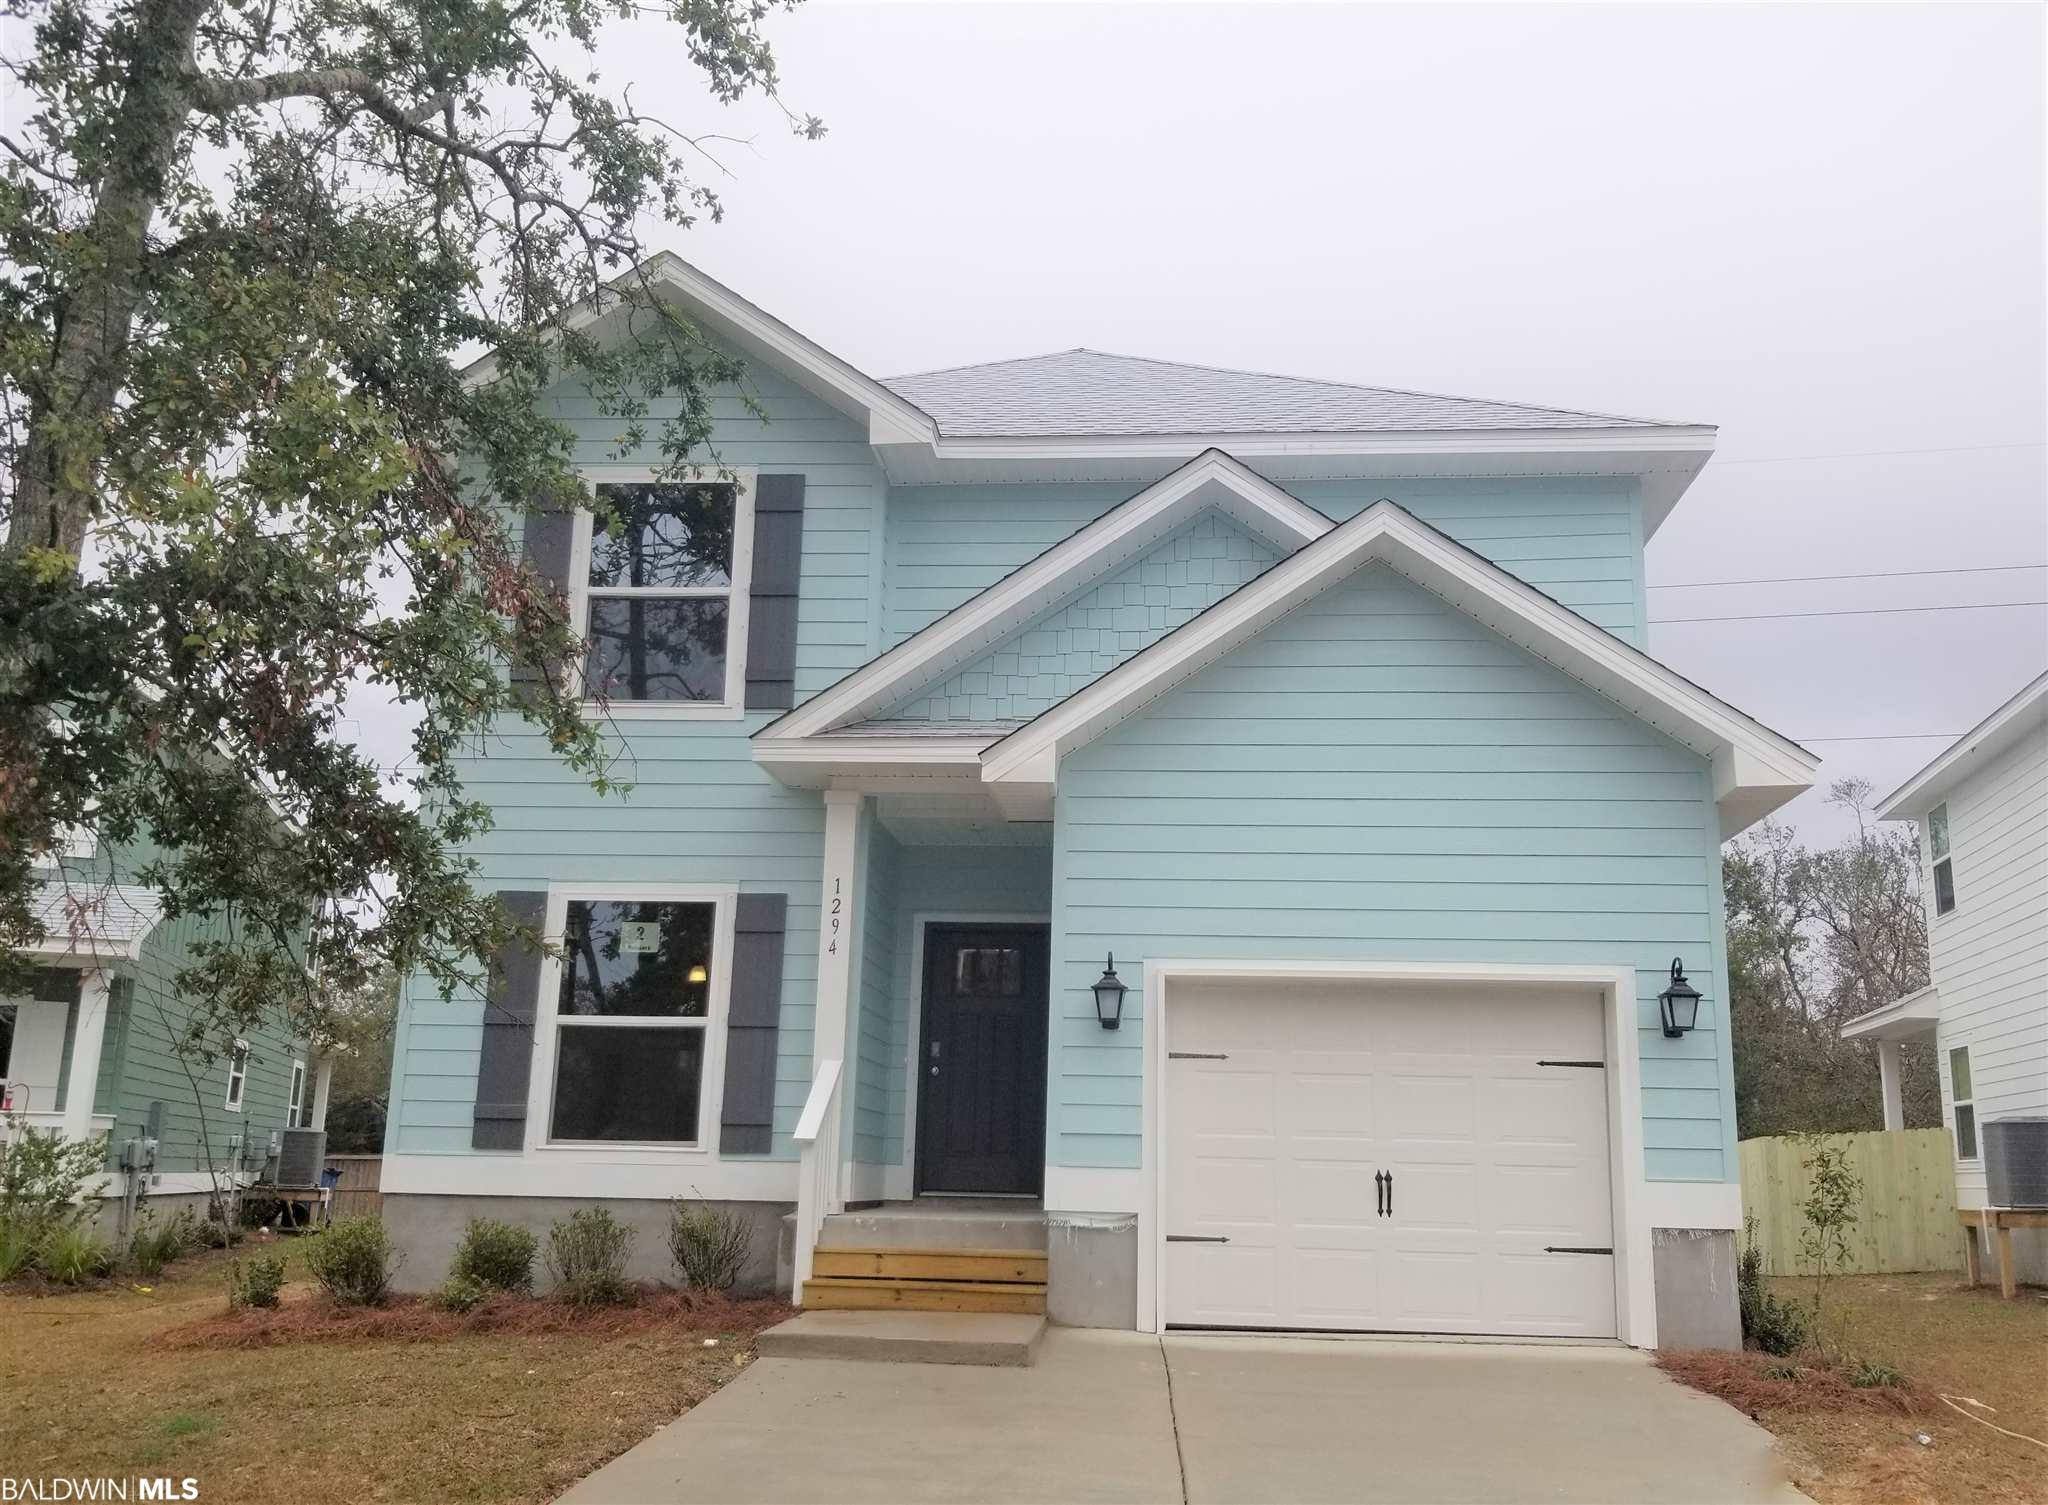 1294 Mako Loop, Gulf Shores, AL 36542